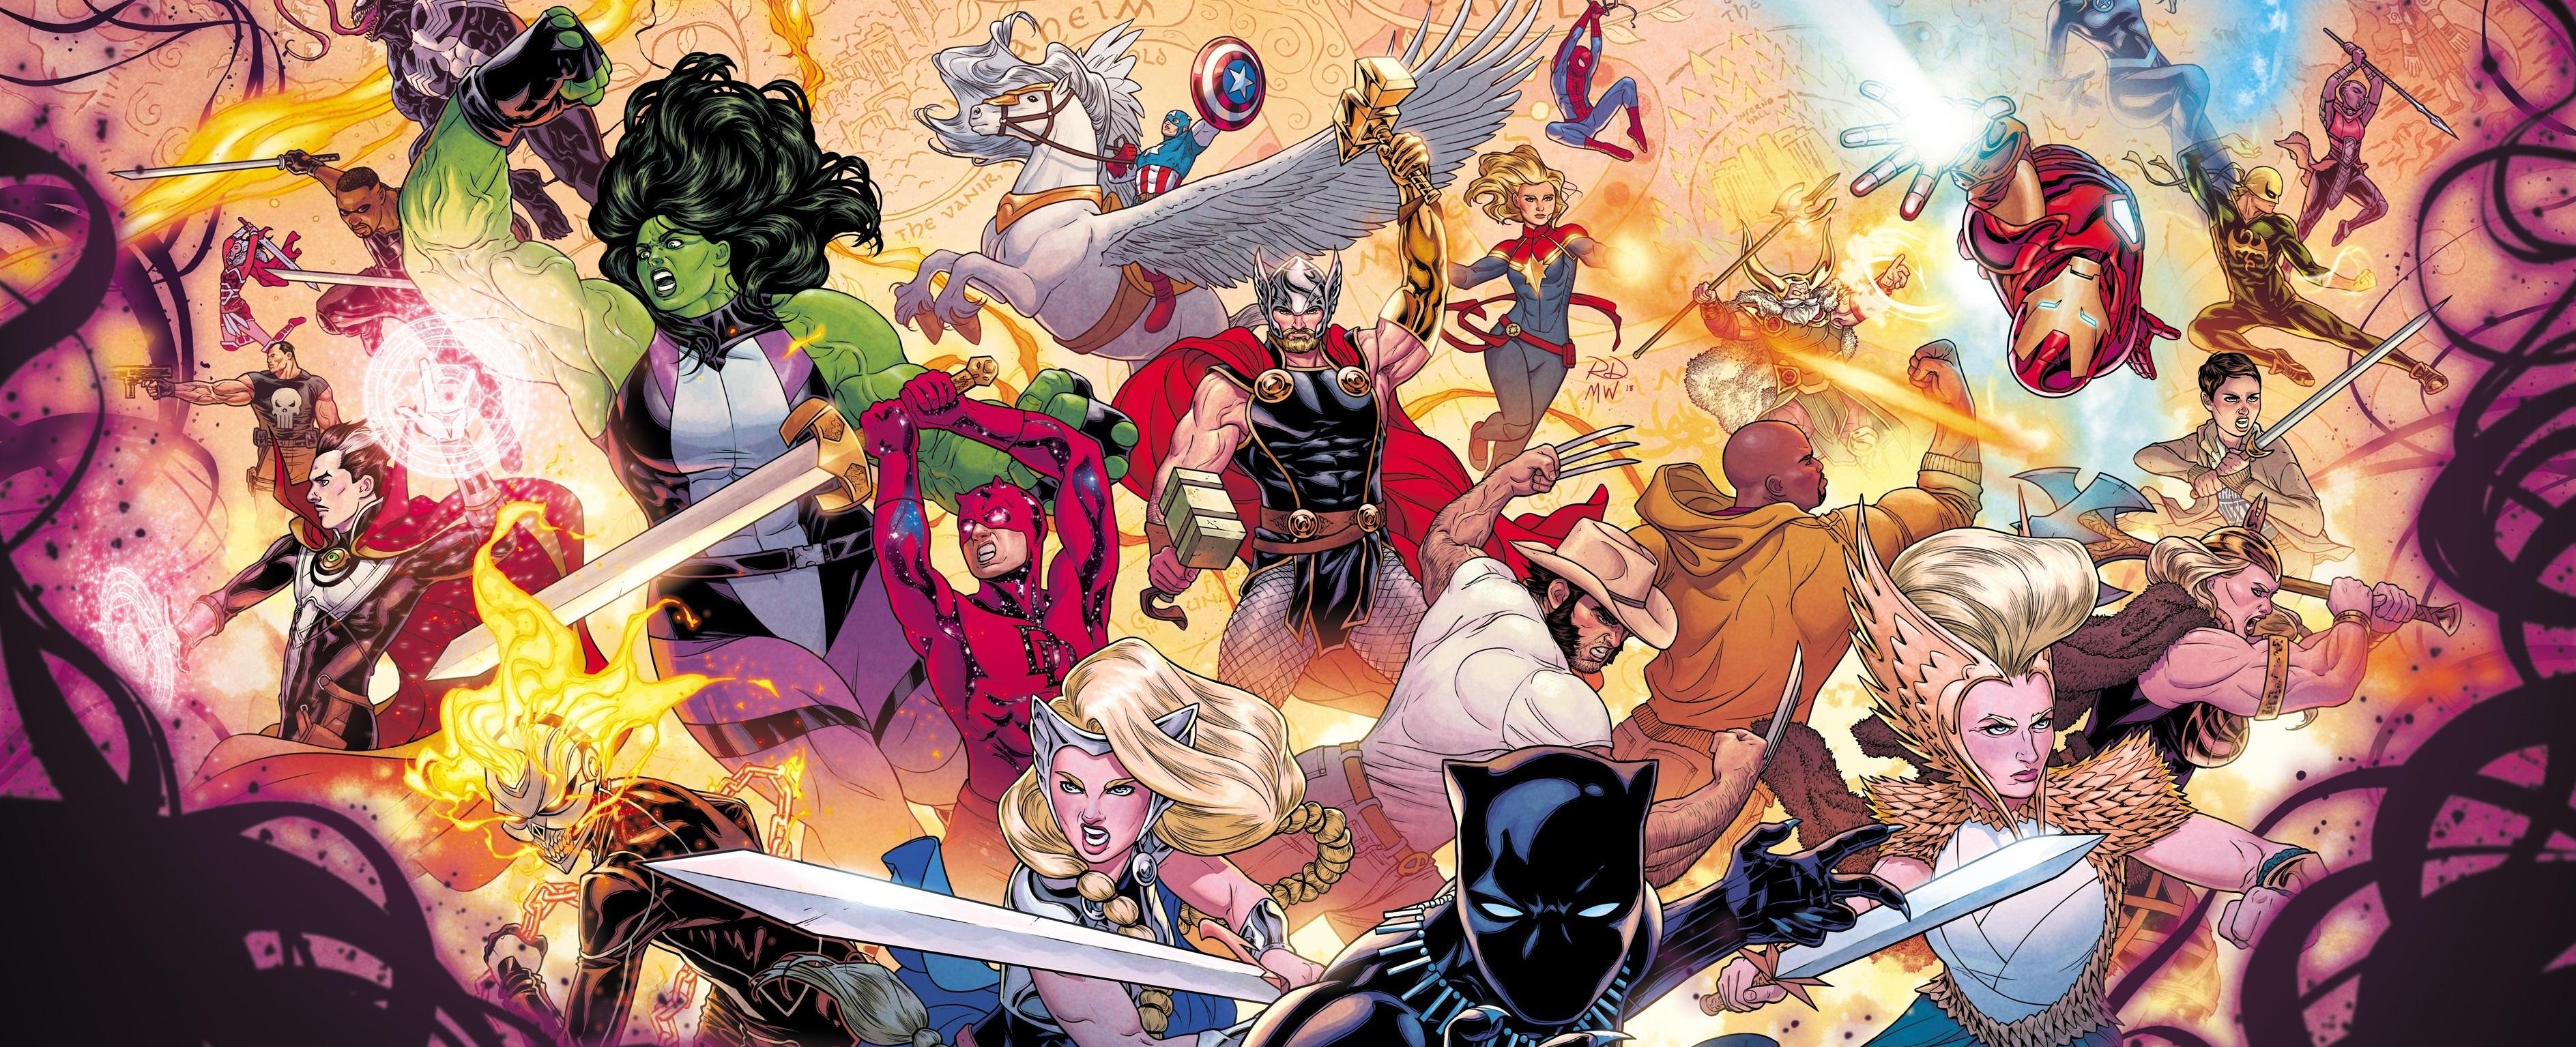 The War of the Realms ended the biggest Thor event in ages: Here's what happened